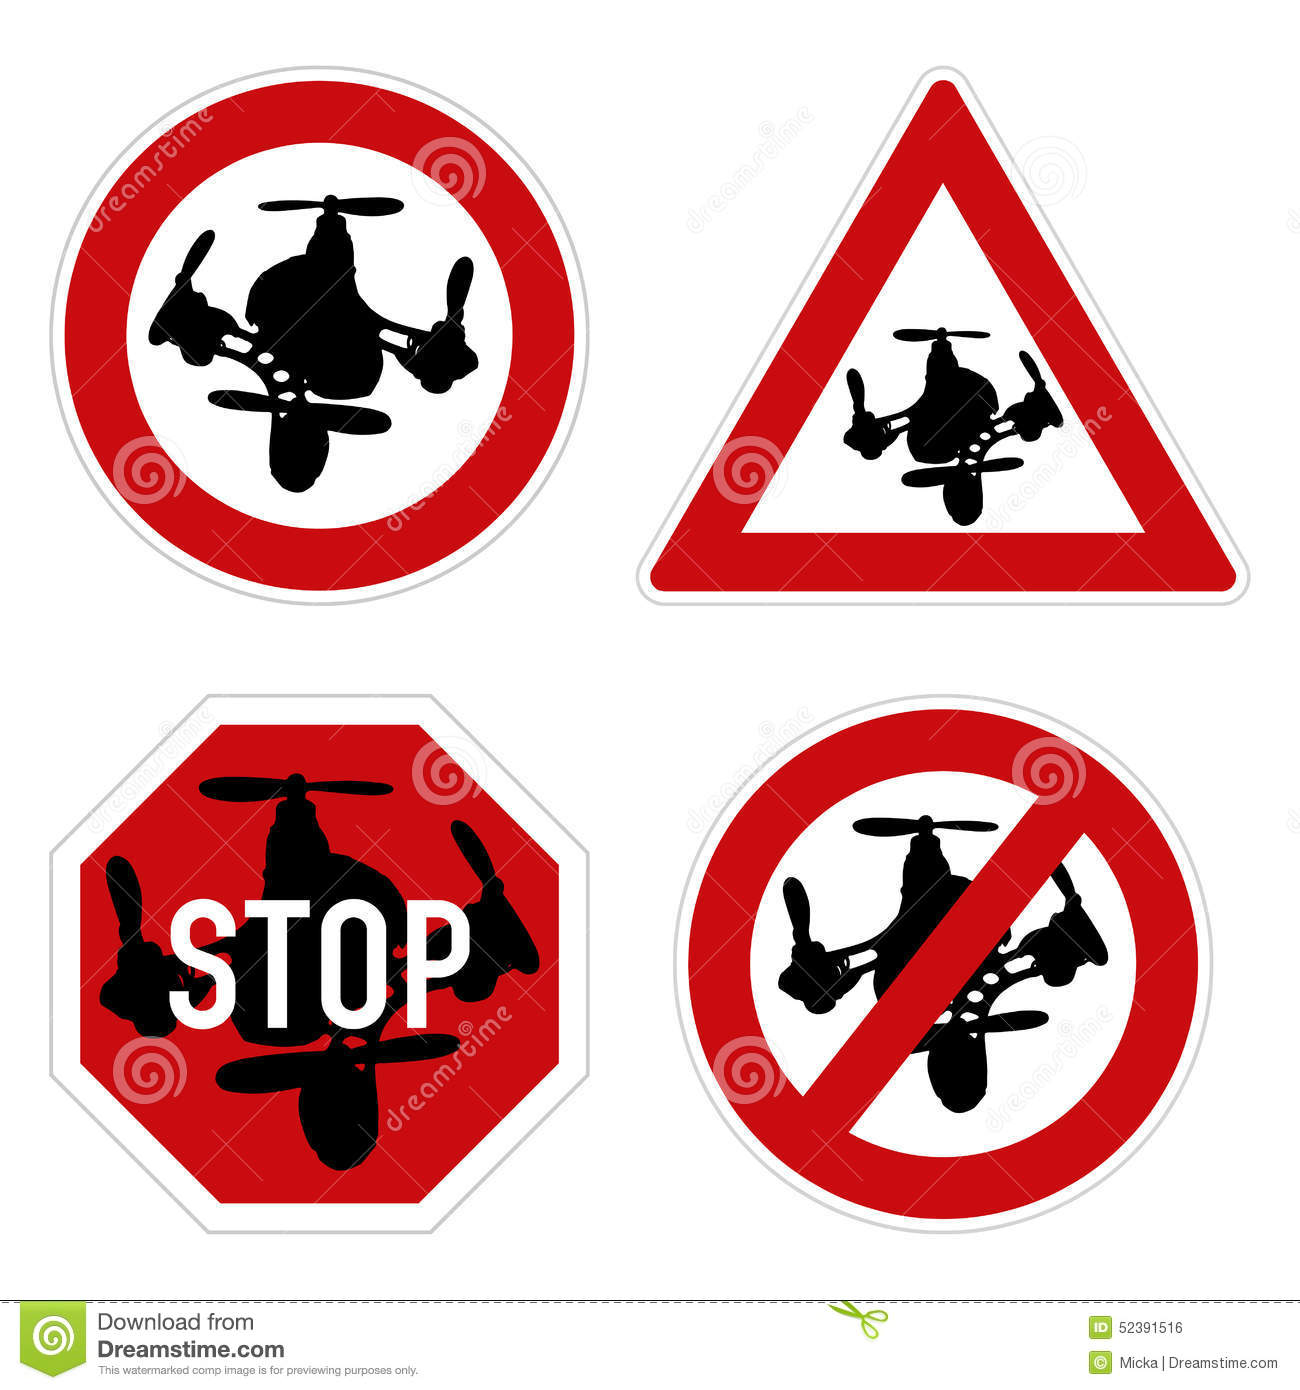 drone toy helicopter with Stock Illustration Drone Warning Sign Vector Set Different Forbidden Signs Quadcopter Image52391516 on New Arrival 2 4G 4CH 6 Axis Gyro Mini Drone Toy RC Quadcopter With 2 0MP Camera And LED Light further Hexacopters Quadcopters Octocopters in addition Kids mini remote controlled drone additionally Mini Drone Rc Helicopter Quadcopter Dron Quad Droni Copter Remote Control Toy Drohne Micro Quadrocopter Small Ufo For Kids in addition 74896.